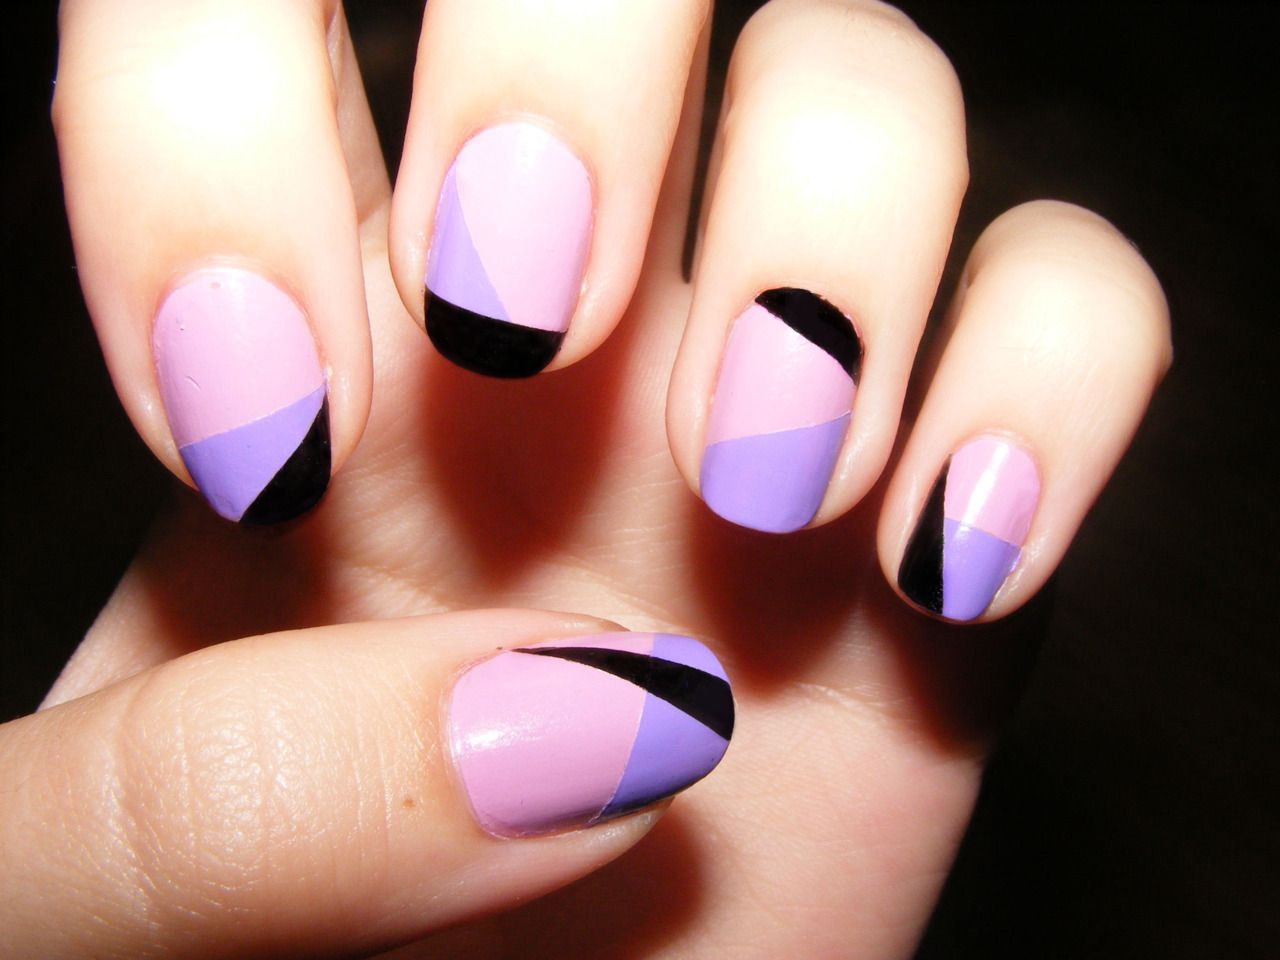 Recreate this look virtually on your own nails httpitunes recreate this look virtually on your own nails httpitunesle prinsesfo Image collections